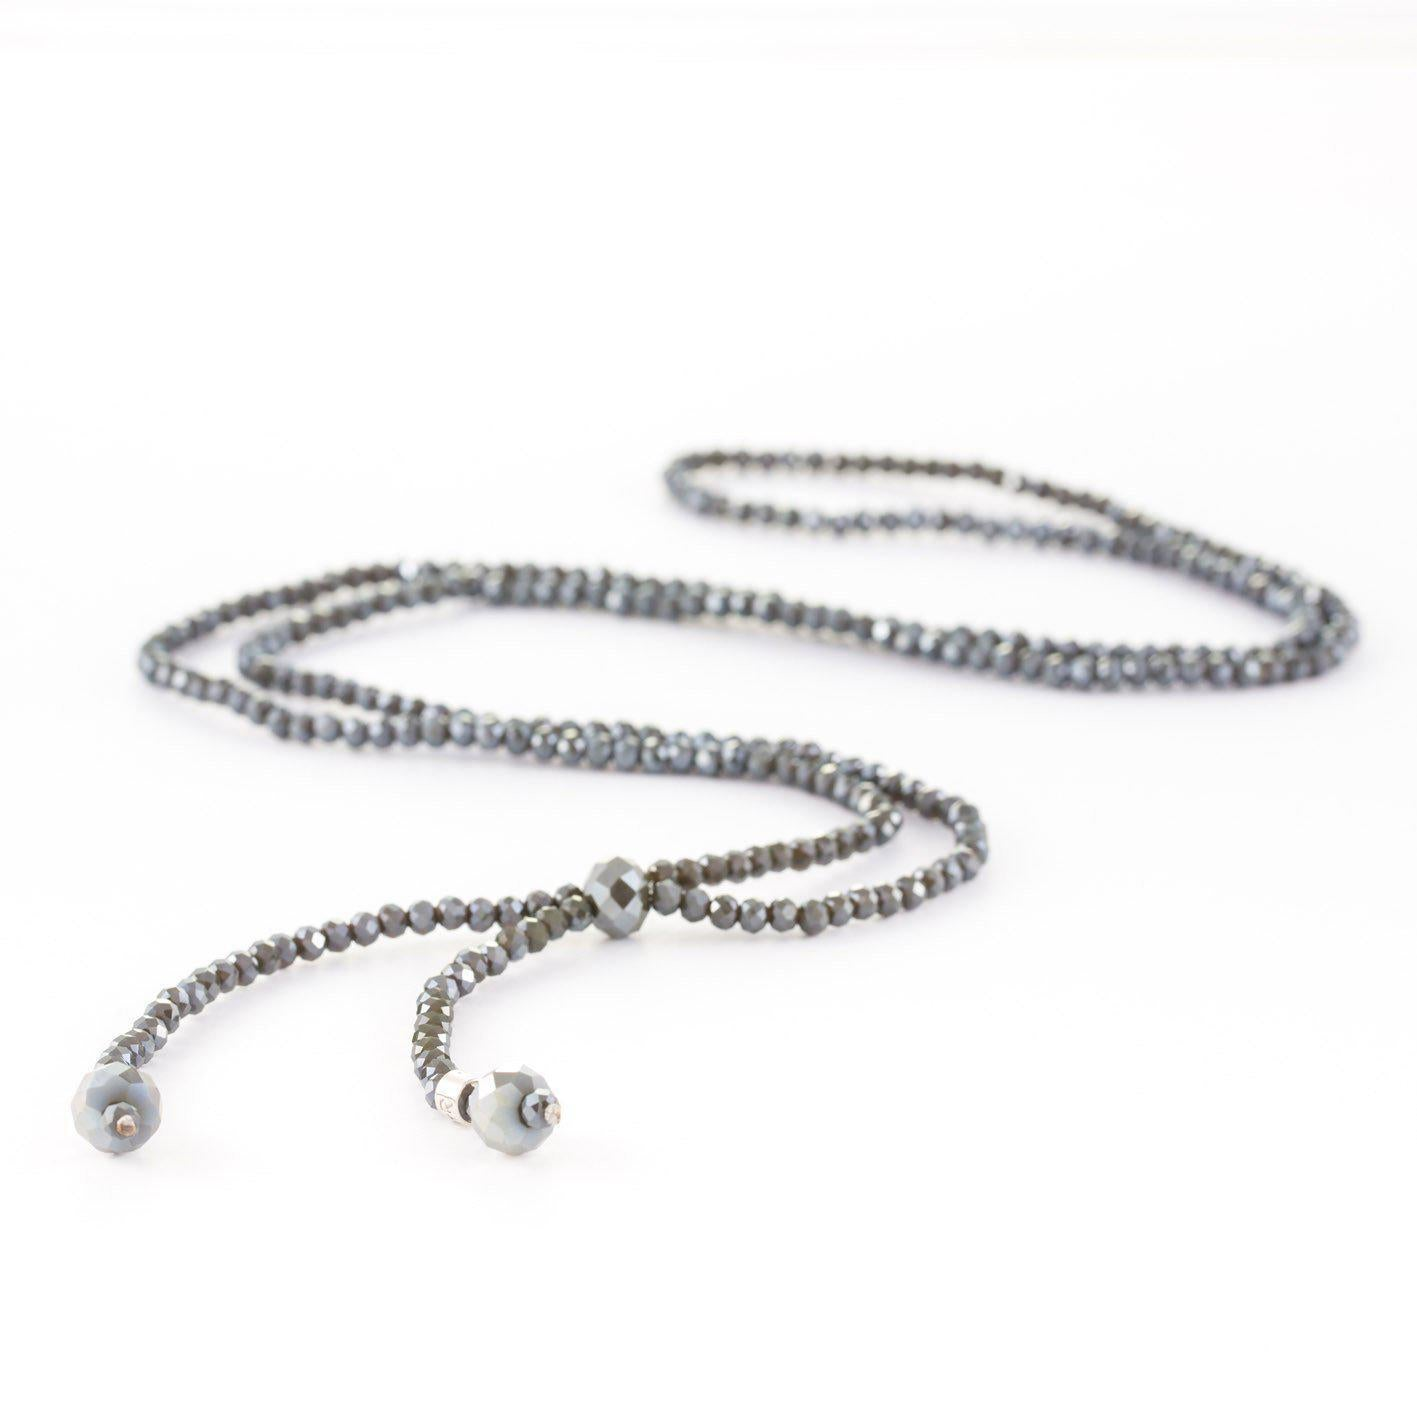 Stones that Rock Dotty Long Crystal Knot Necklace-Stones that Rock-Temples and Markets